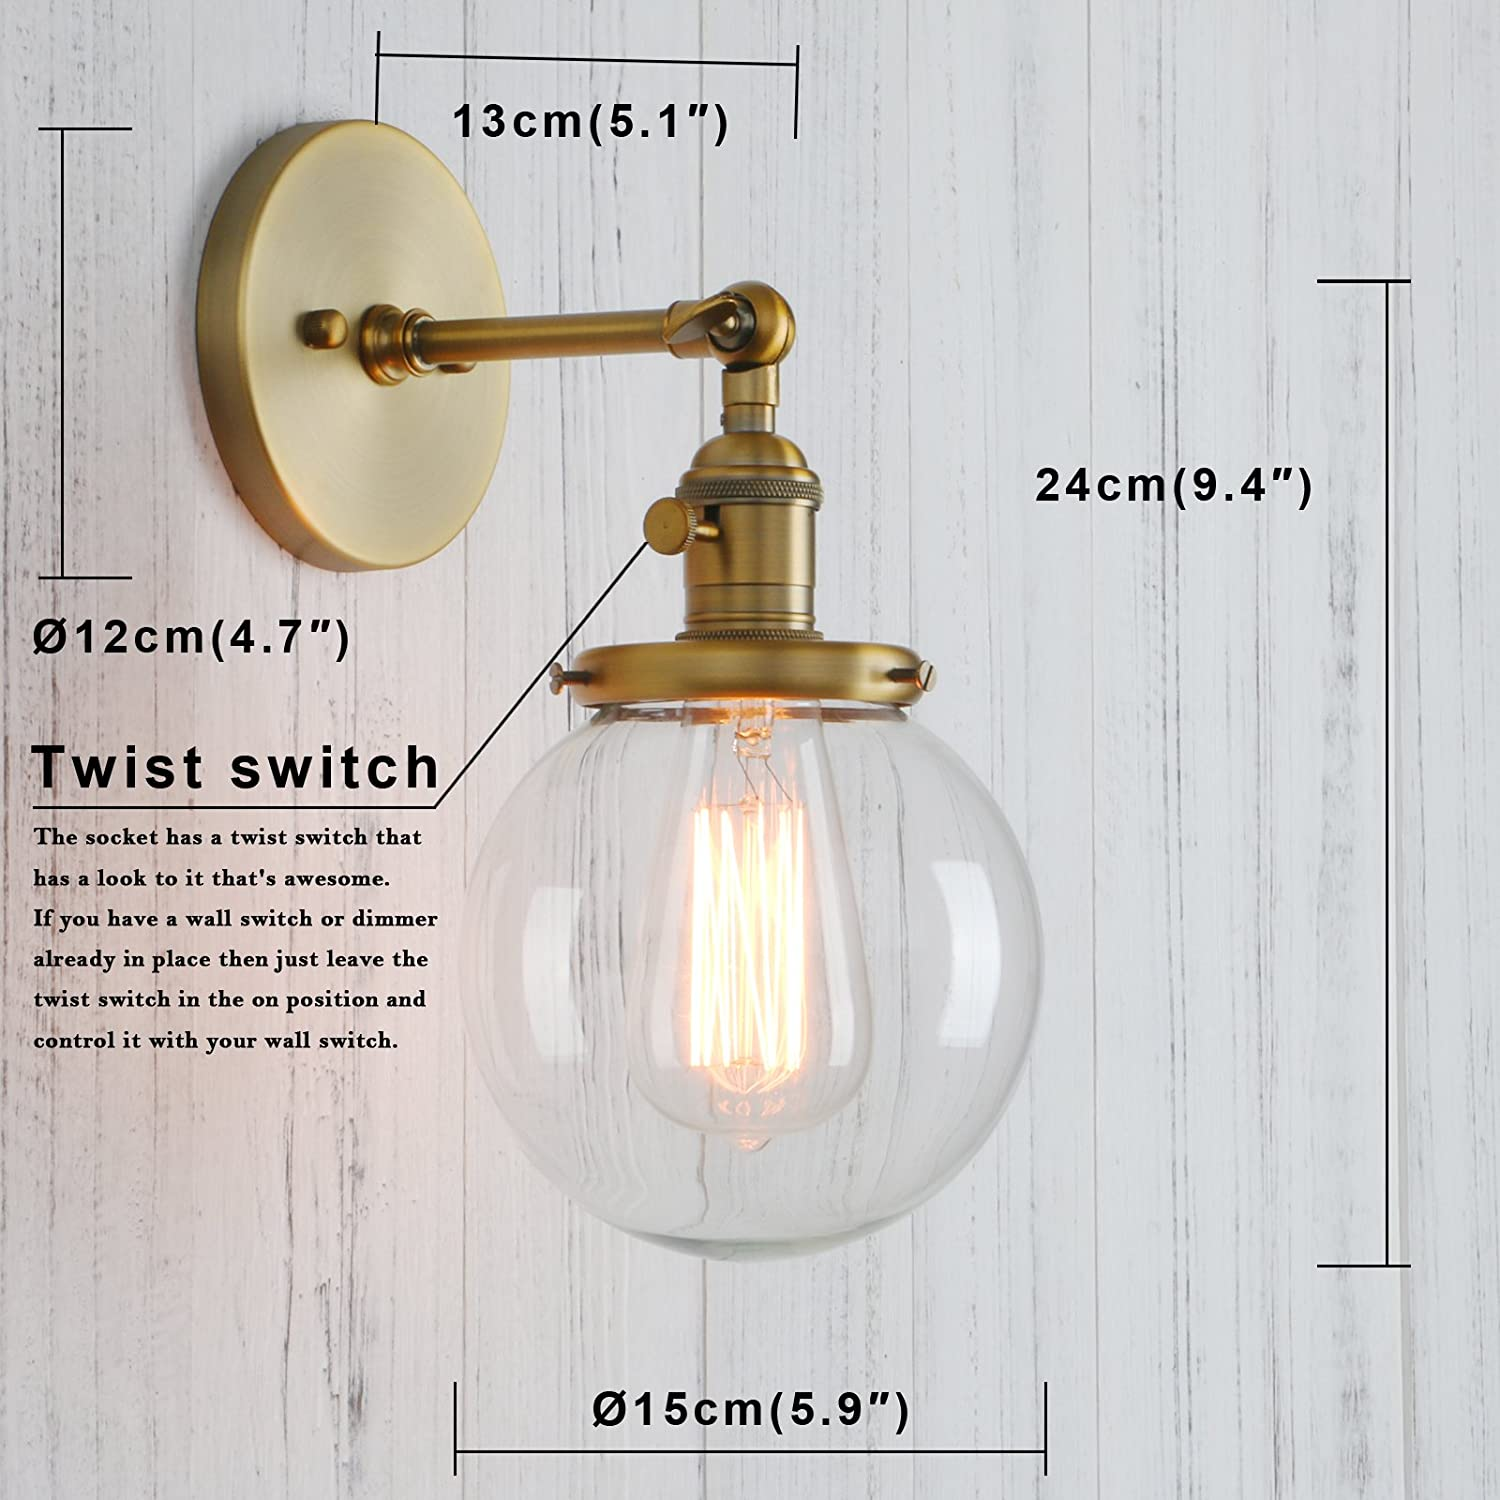 Permo vintage industrial wall sconce lighting fixture with mini permo vintage industrial wall sconce lighting fixture with mini 59 round clear glass globe hand blown shade antique amazon amipublicfo Image collections